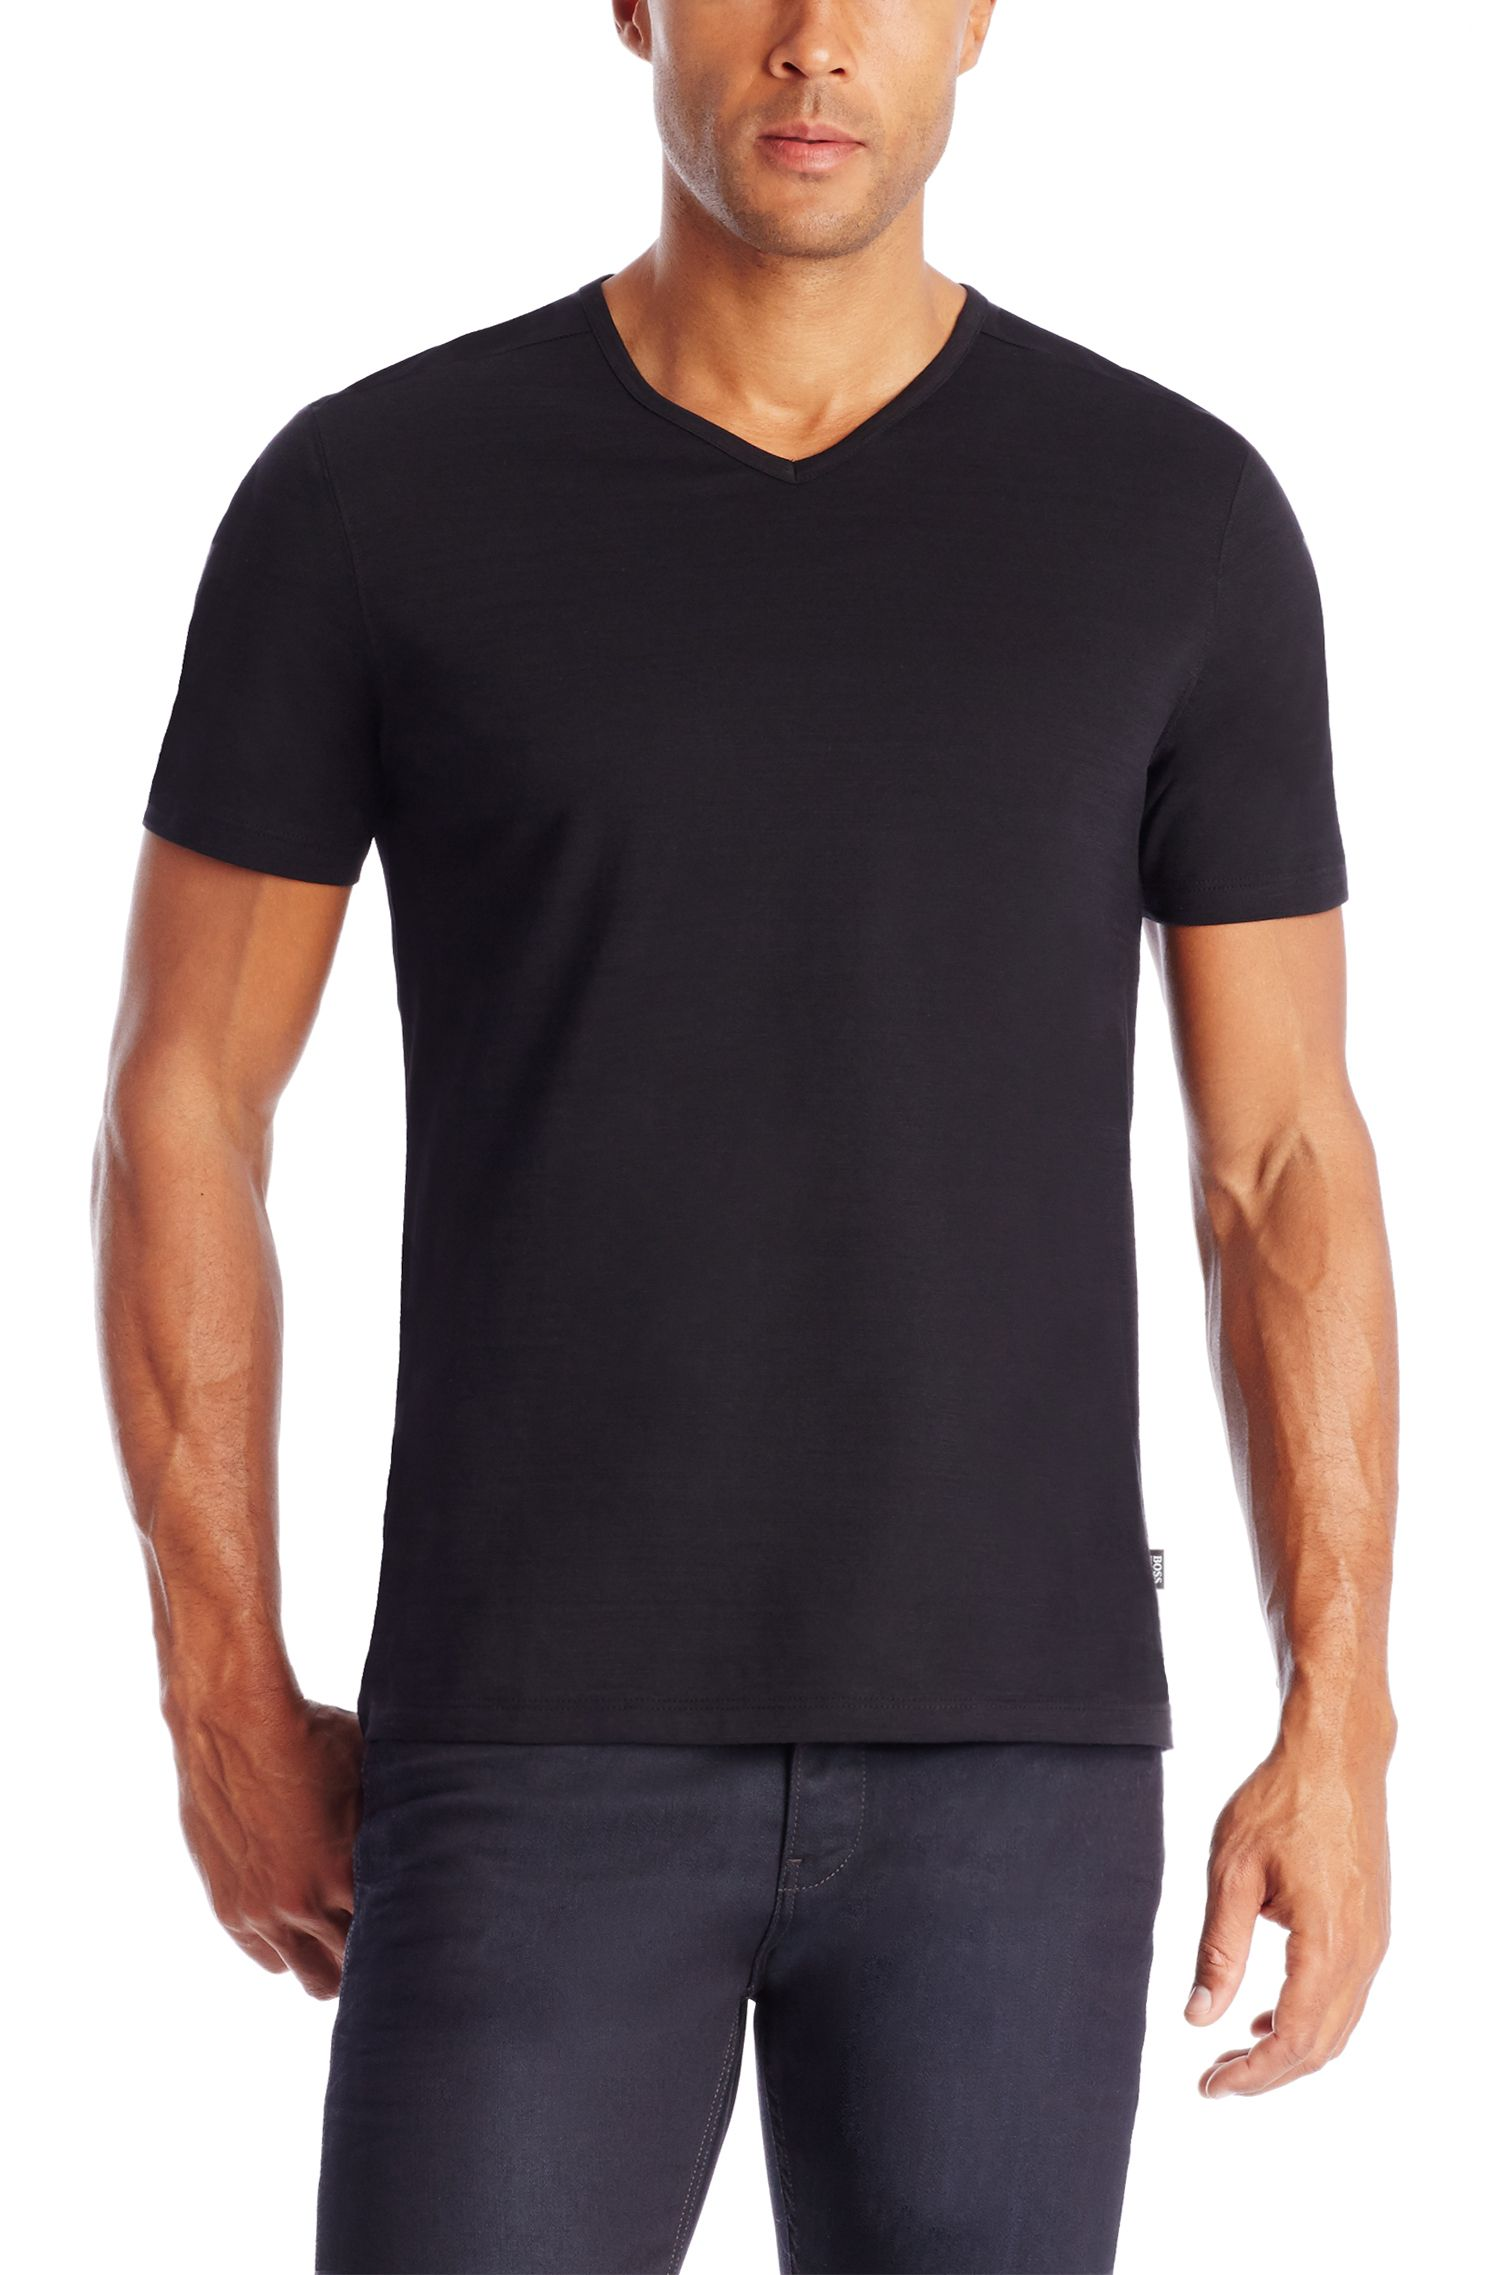 The gallery for blank black t shirt v neck V neck black t shirt